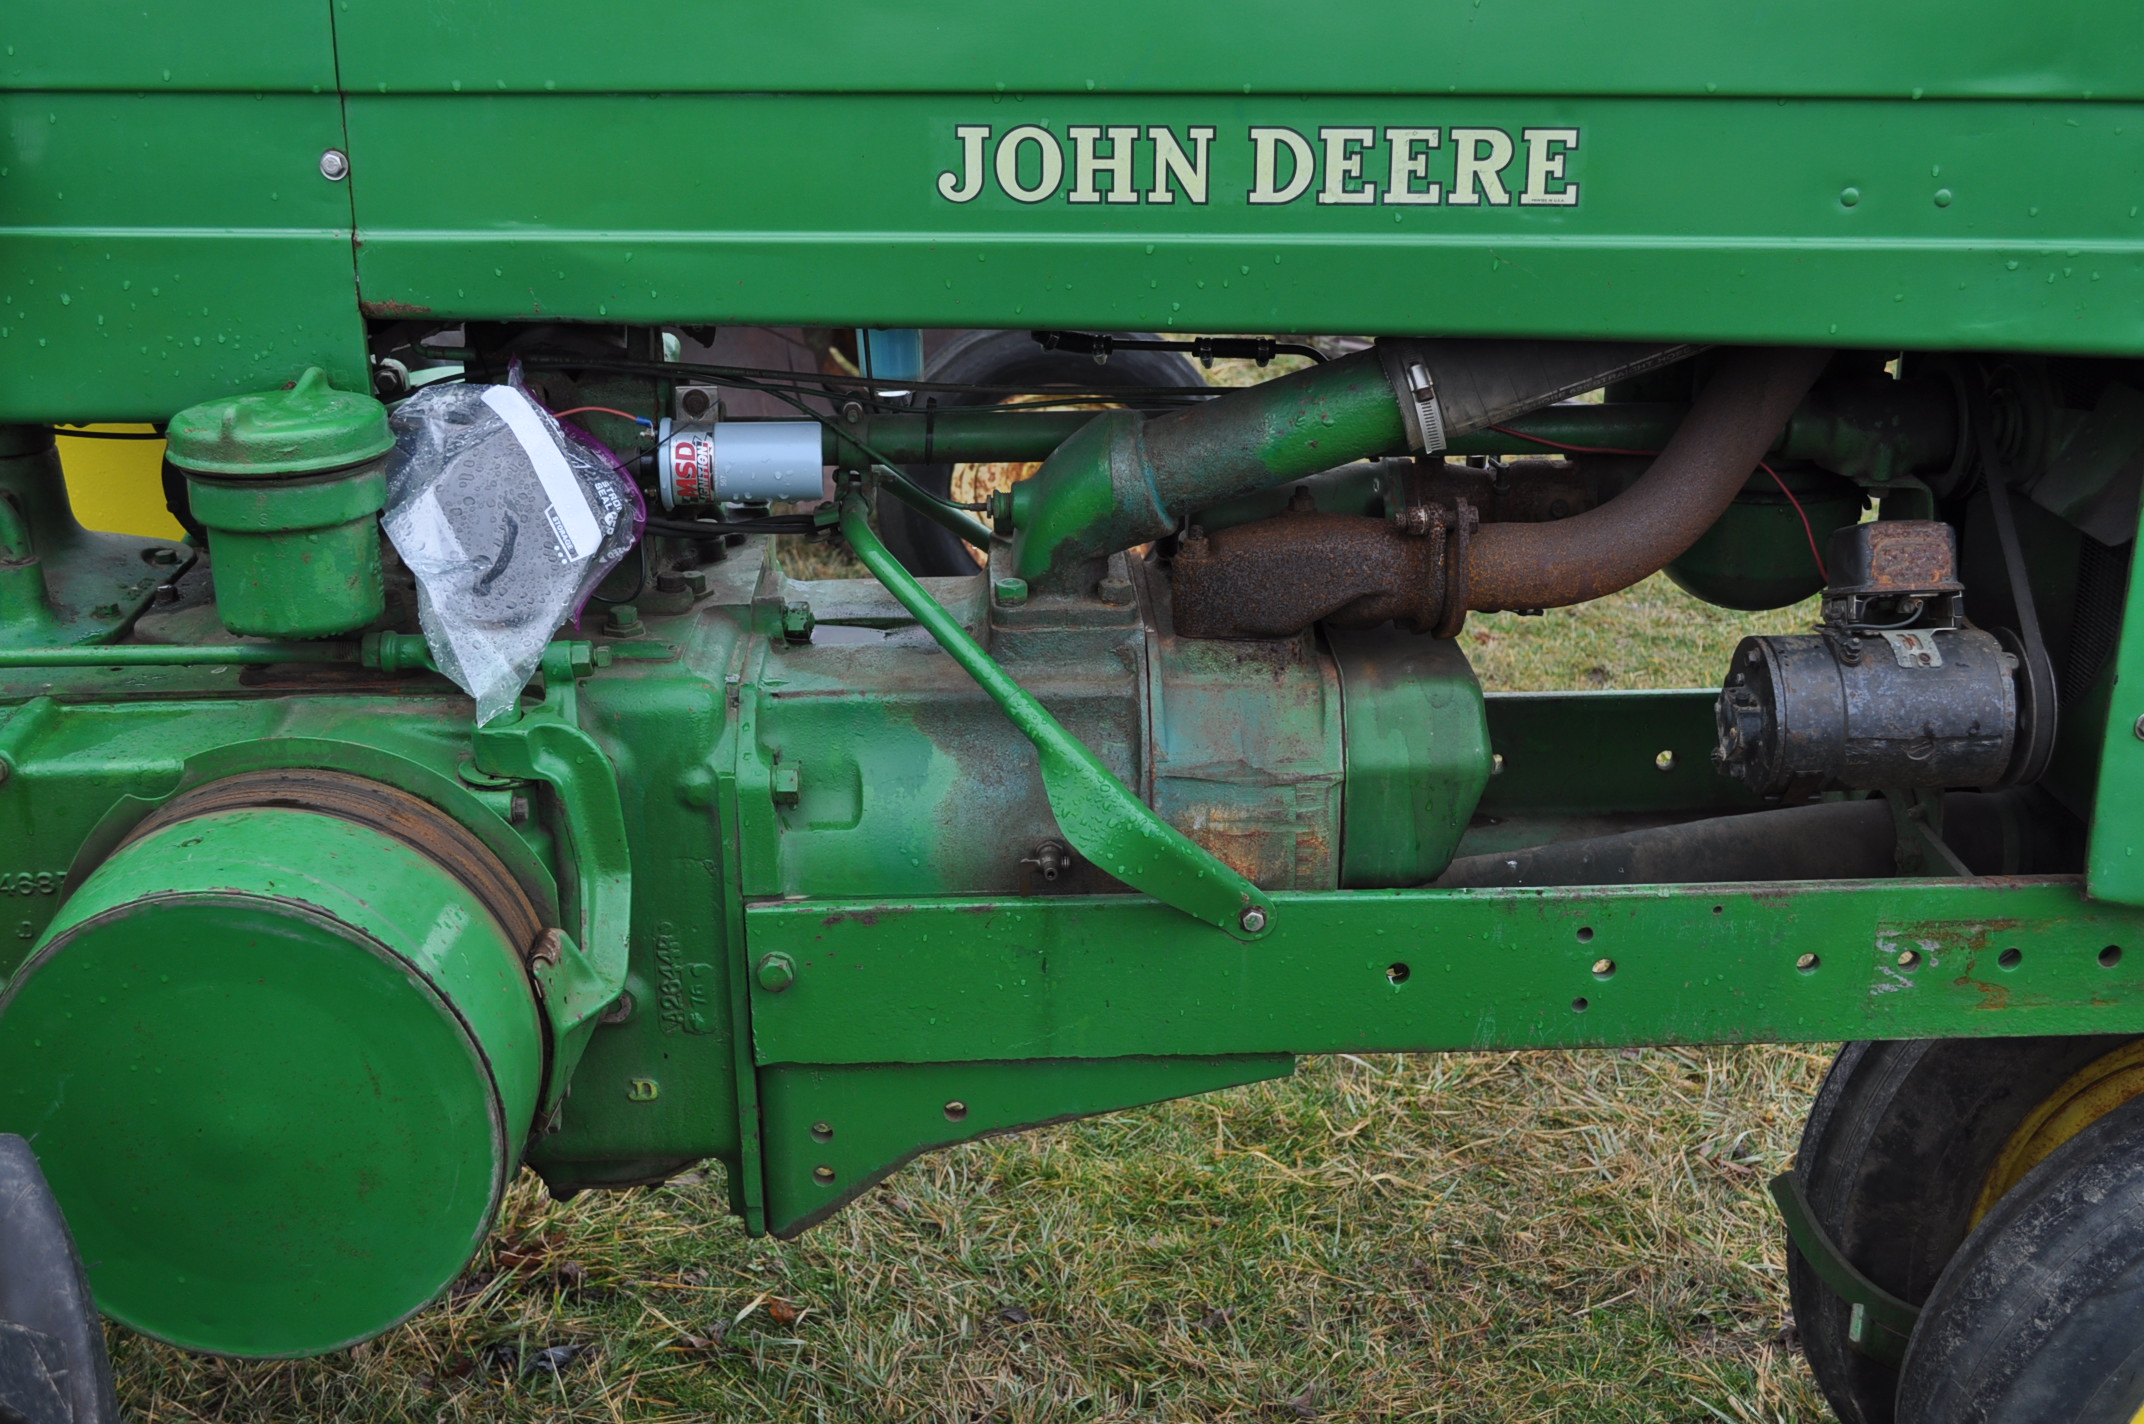 1942 John Deere Styled A, New 12.4-38 rear tires, narrow front, 540 pto - Image 8 of 15